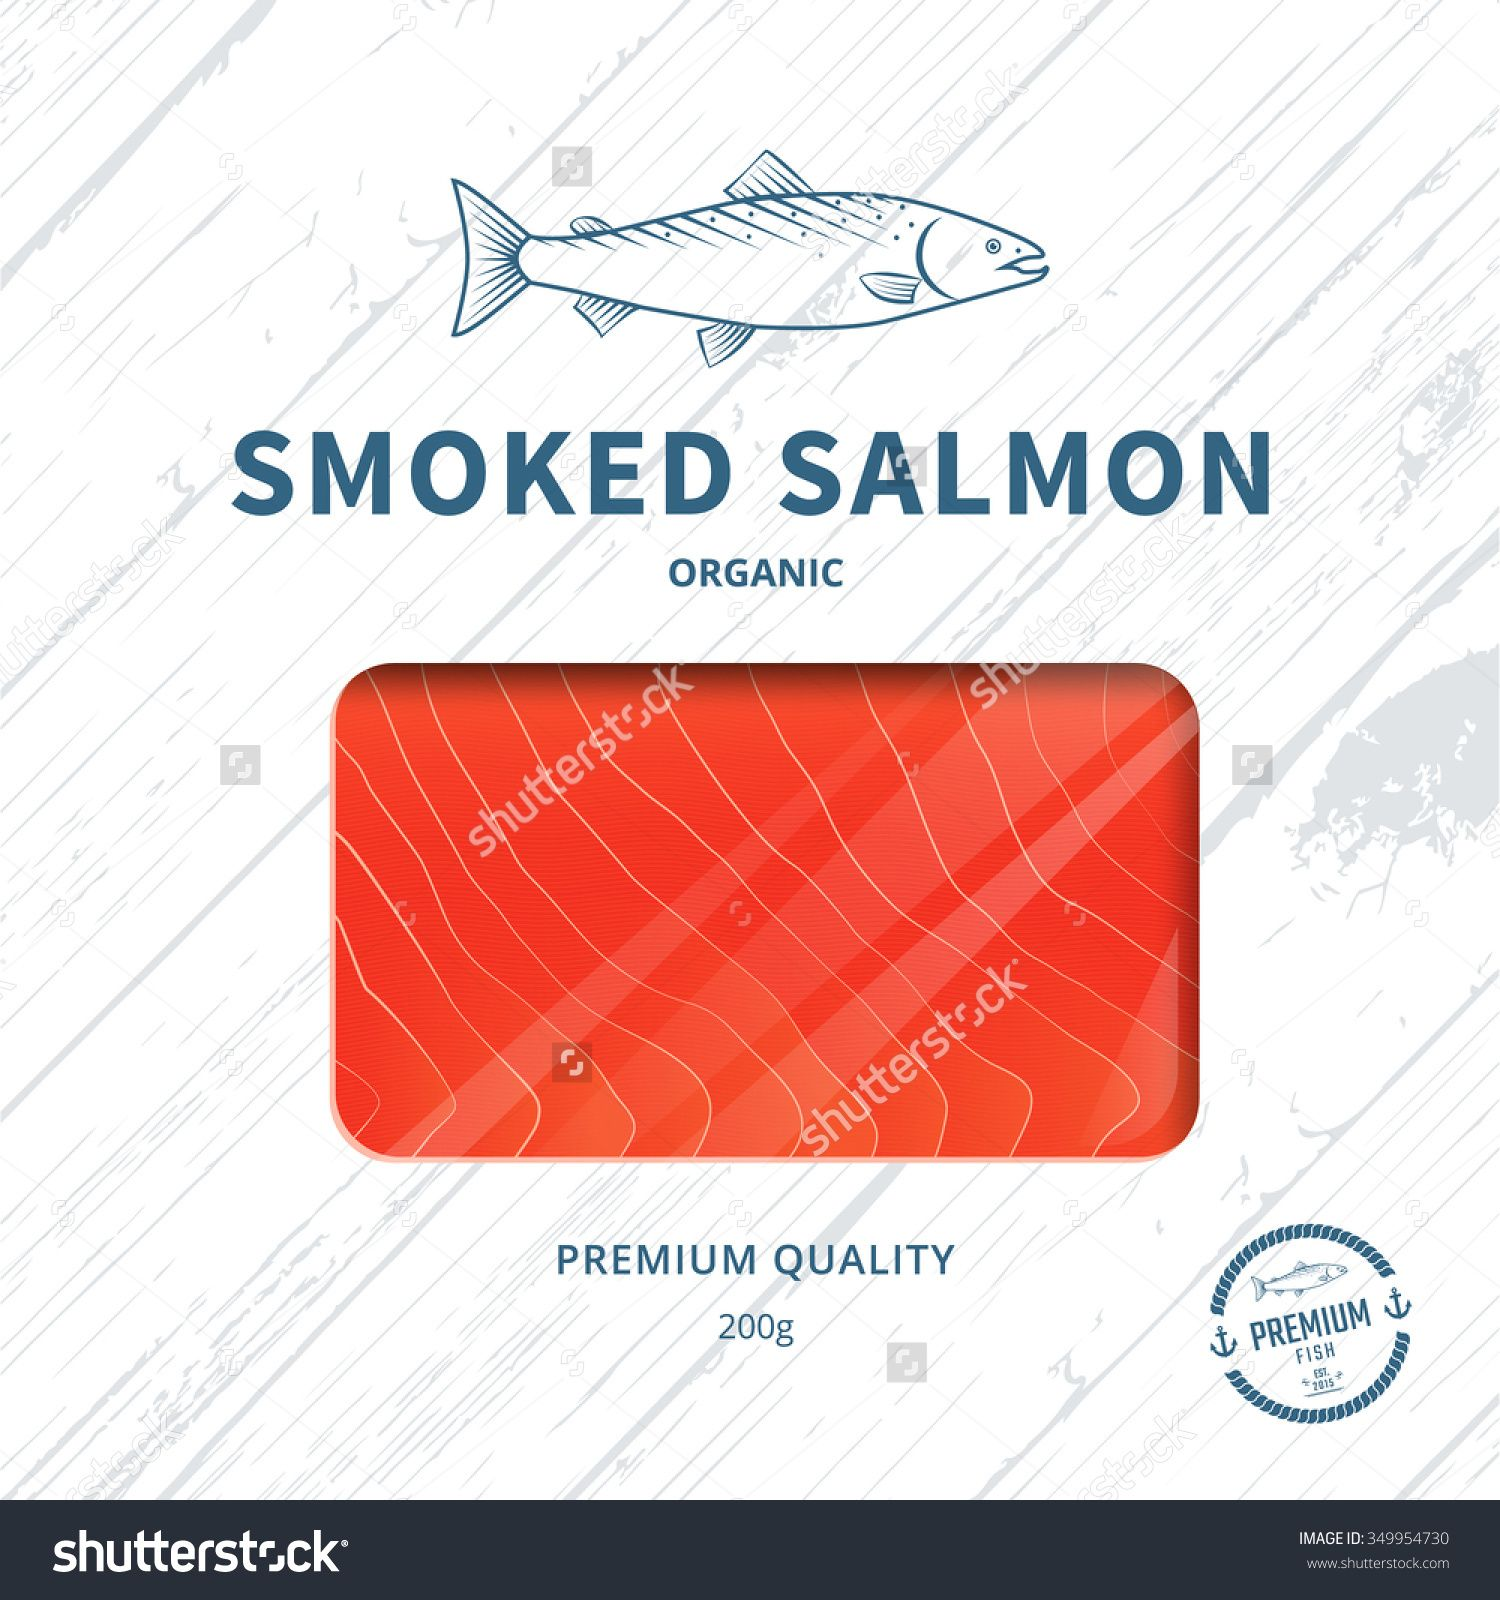 stock-vector-packaging-design-template-for-smoked-salmon ...